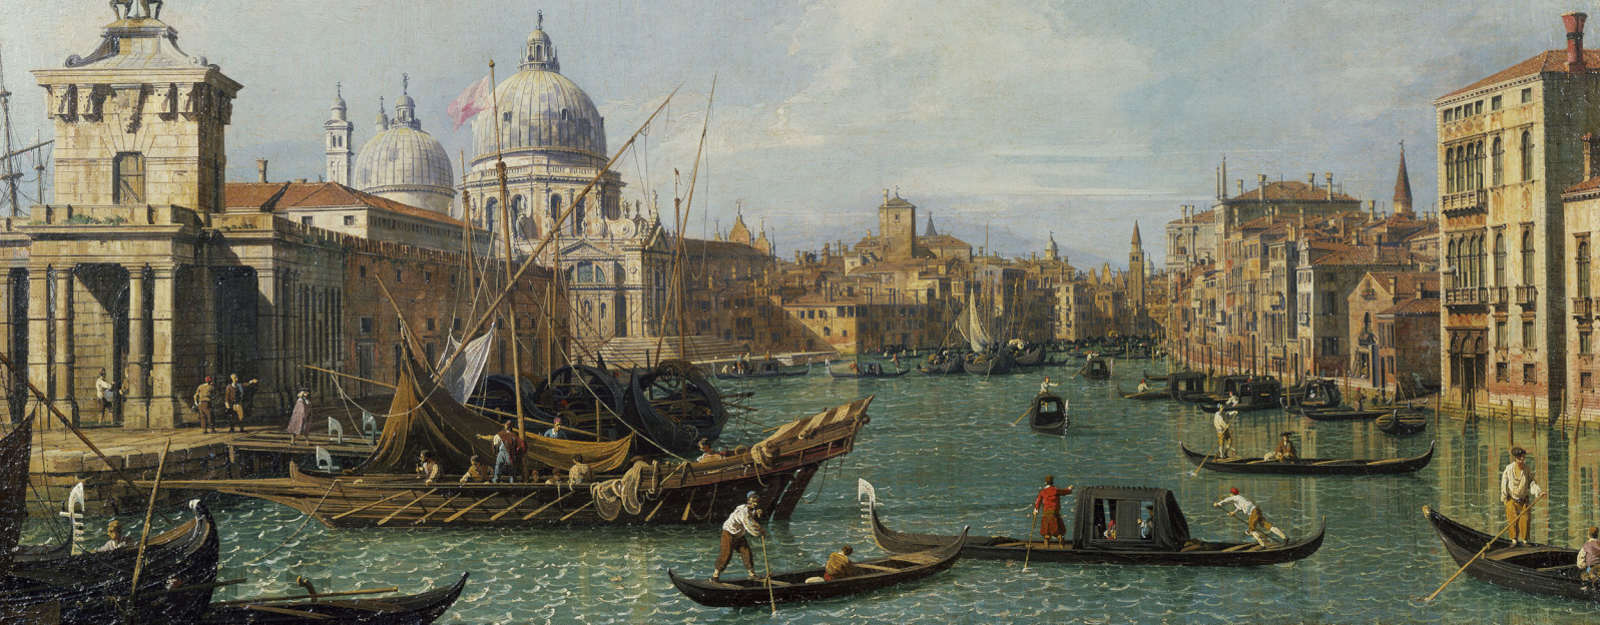 Canaletto's The Mouth of the Grand Canal looking West towards the Carità